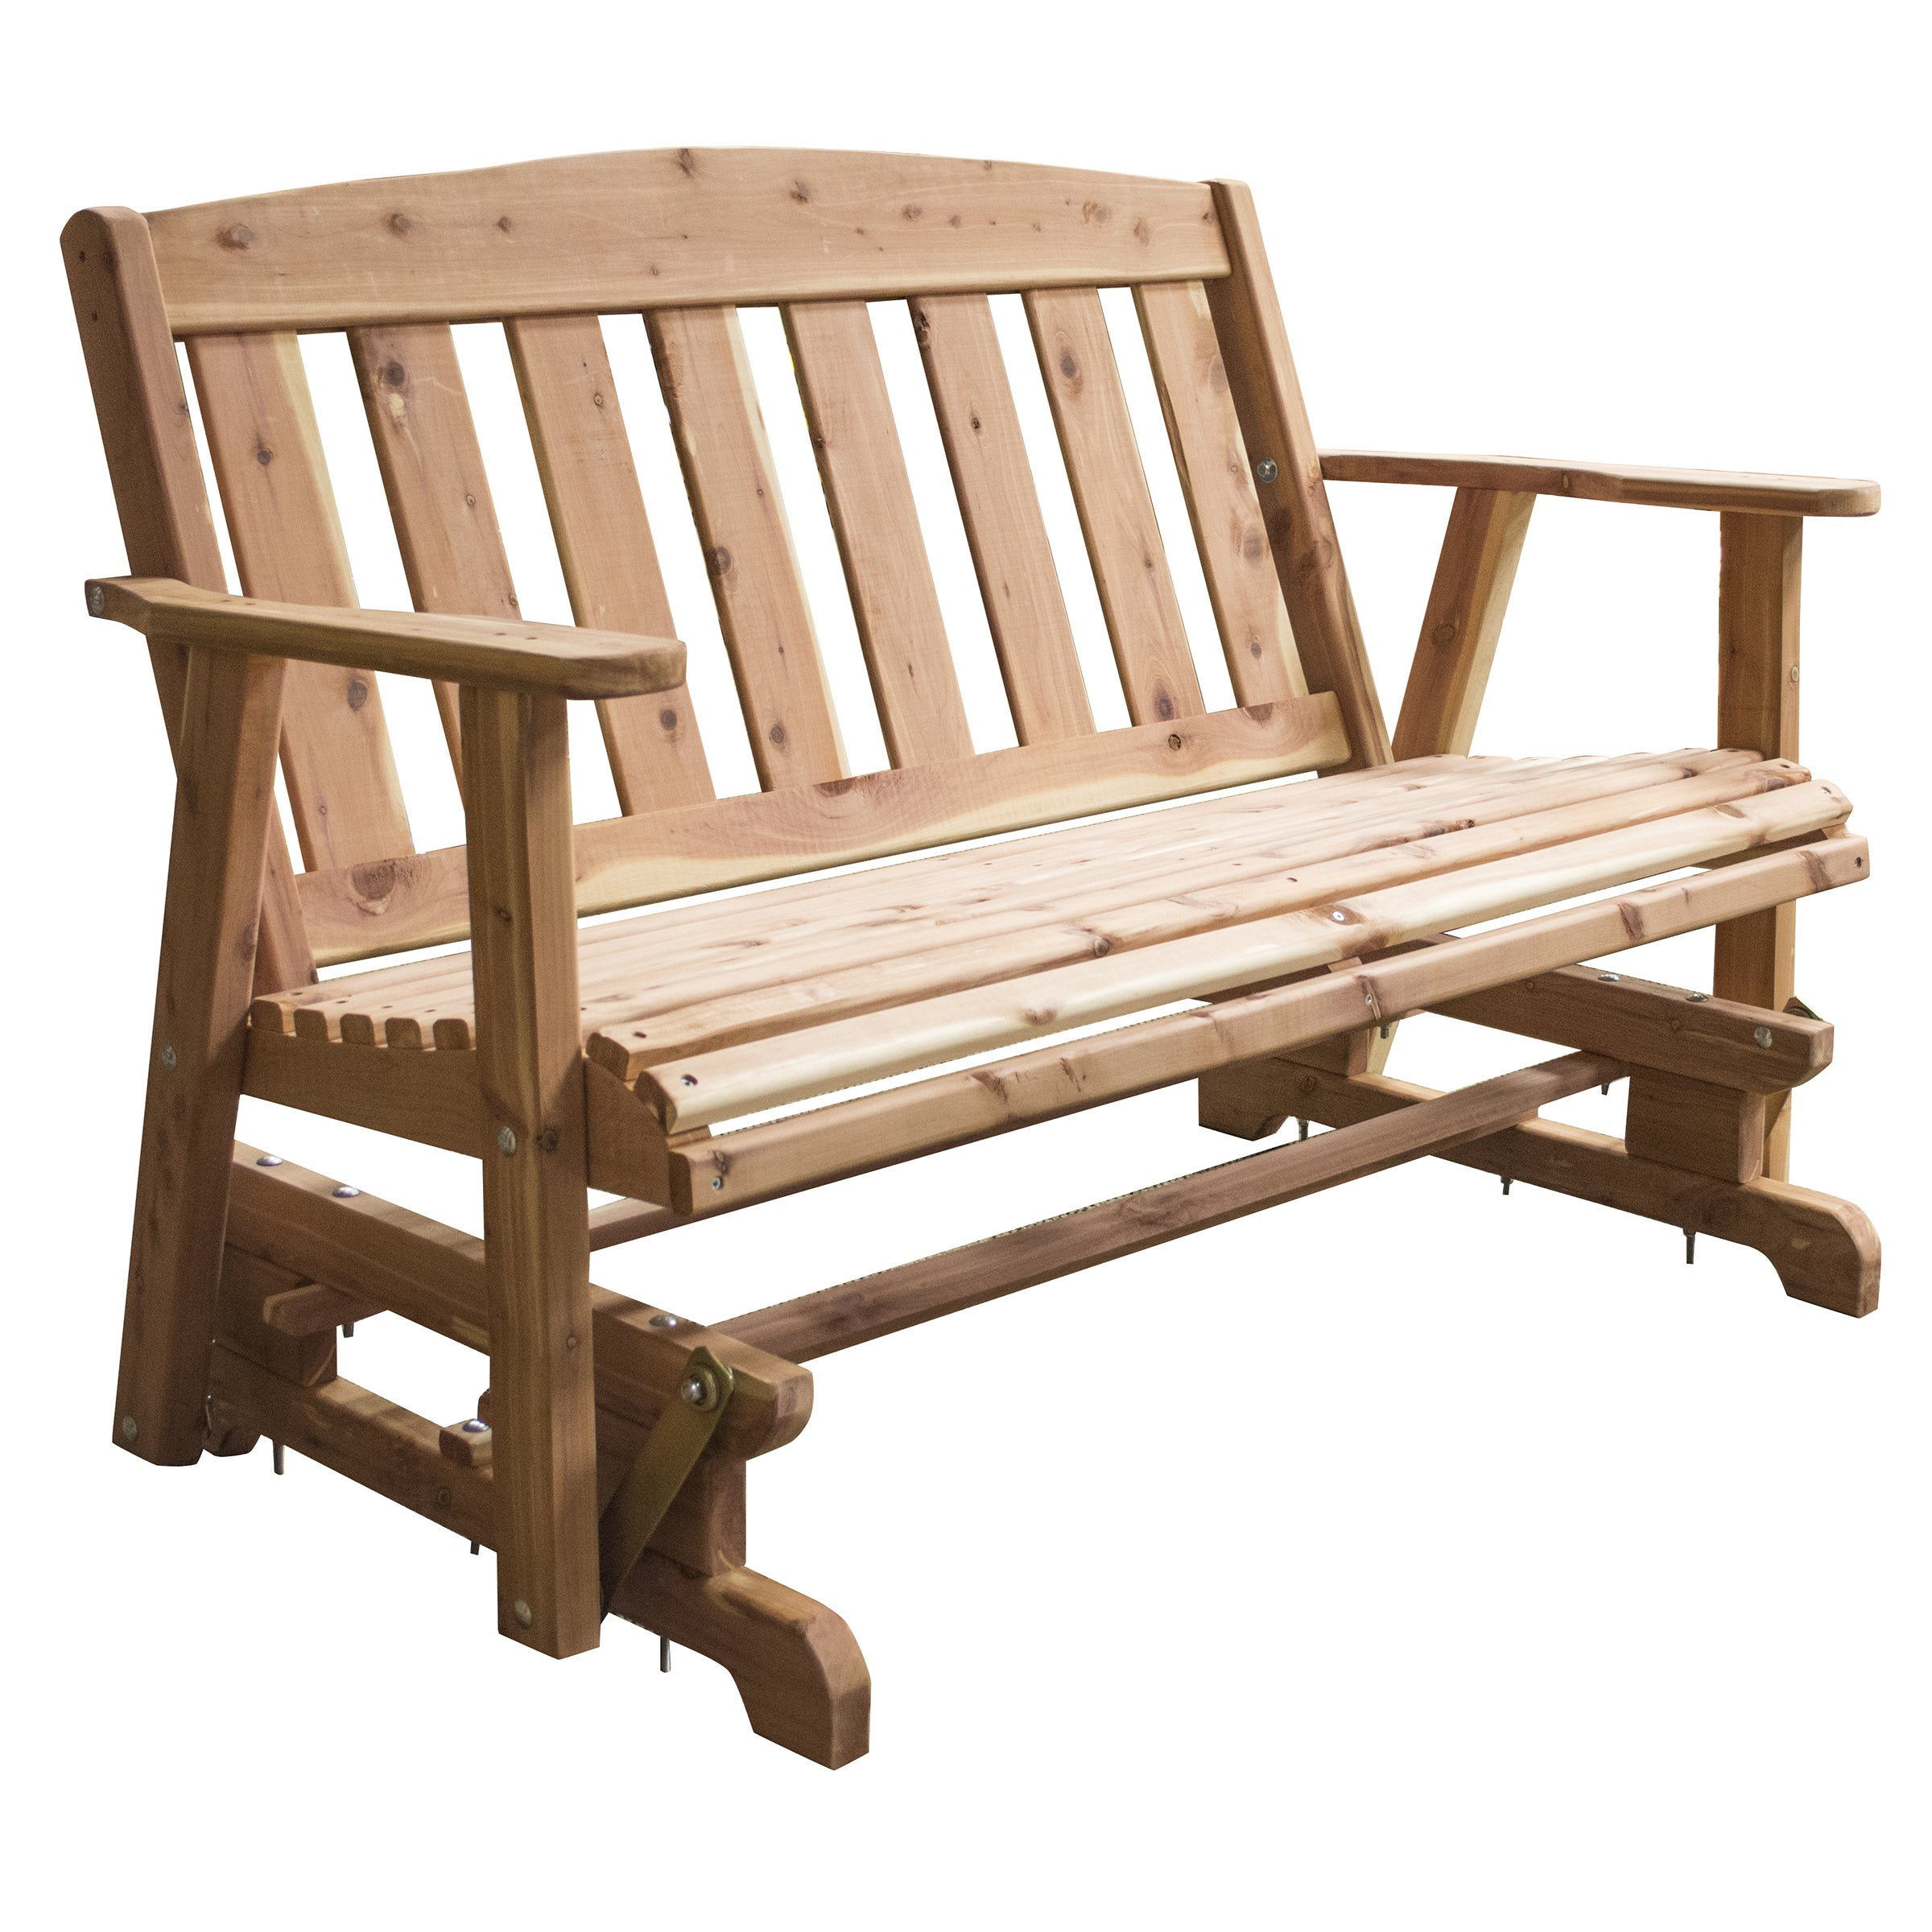 Amerihome Amish Made Glider Bench – Brown Inside 2 Person Natural Cedar Wood Outdoor Gliders (View 18 of 25)